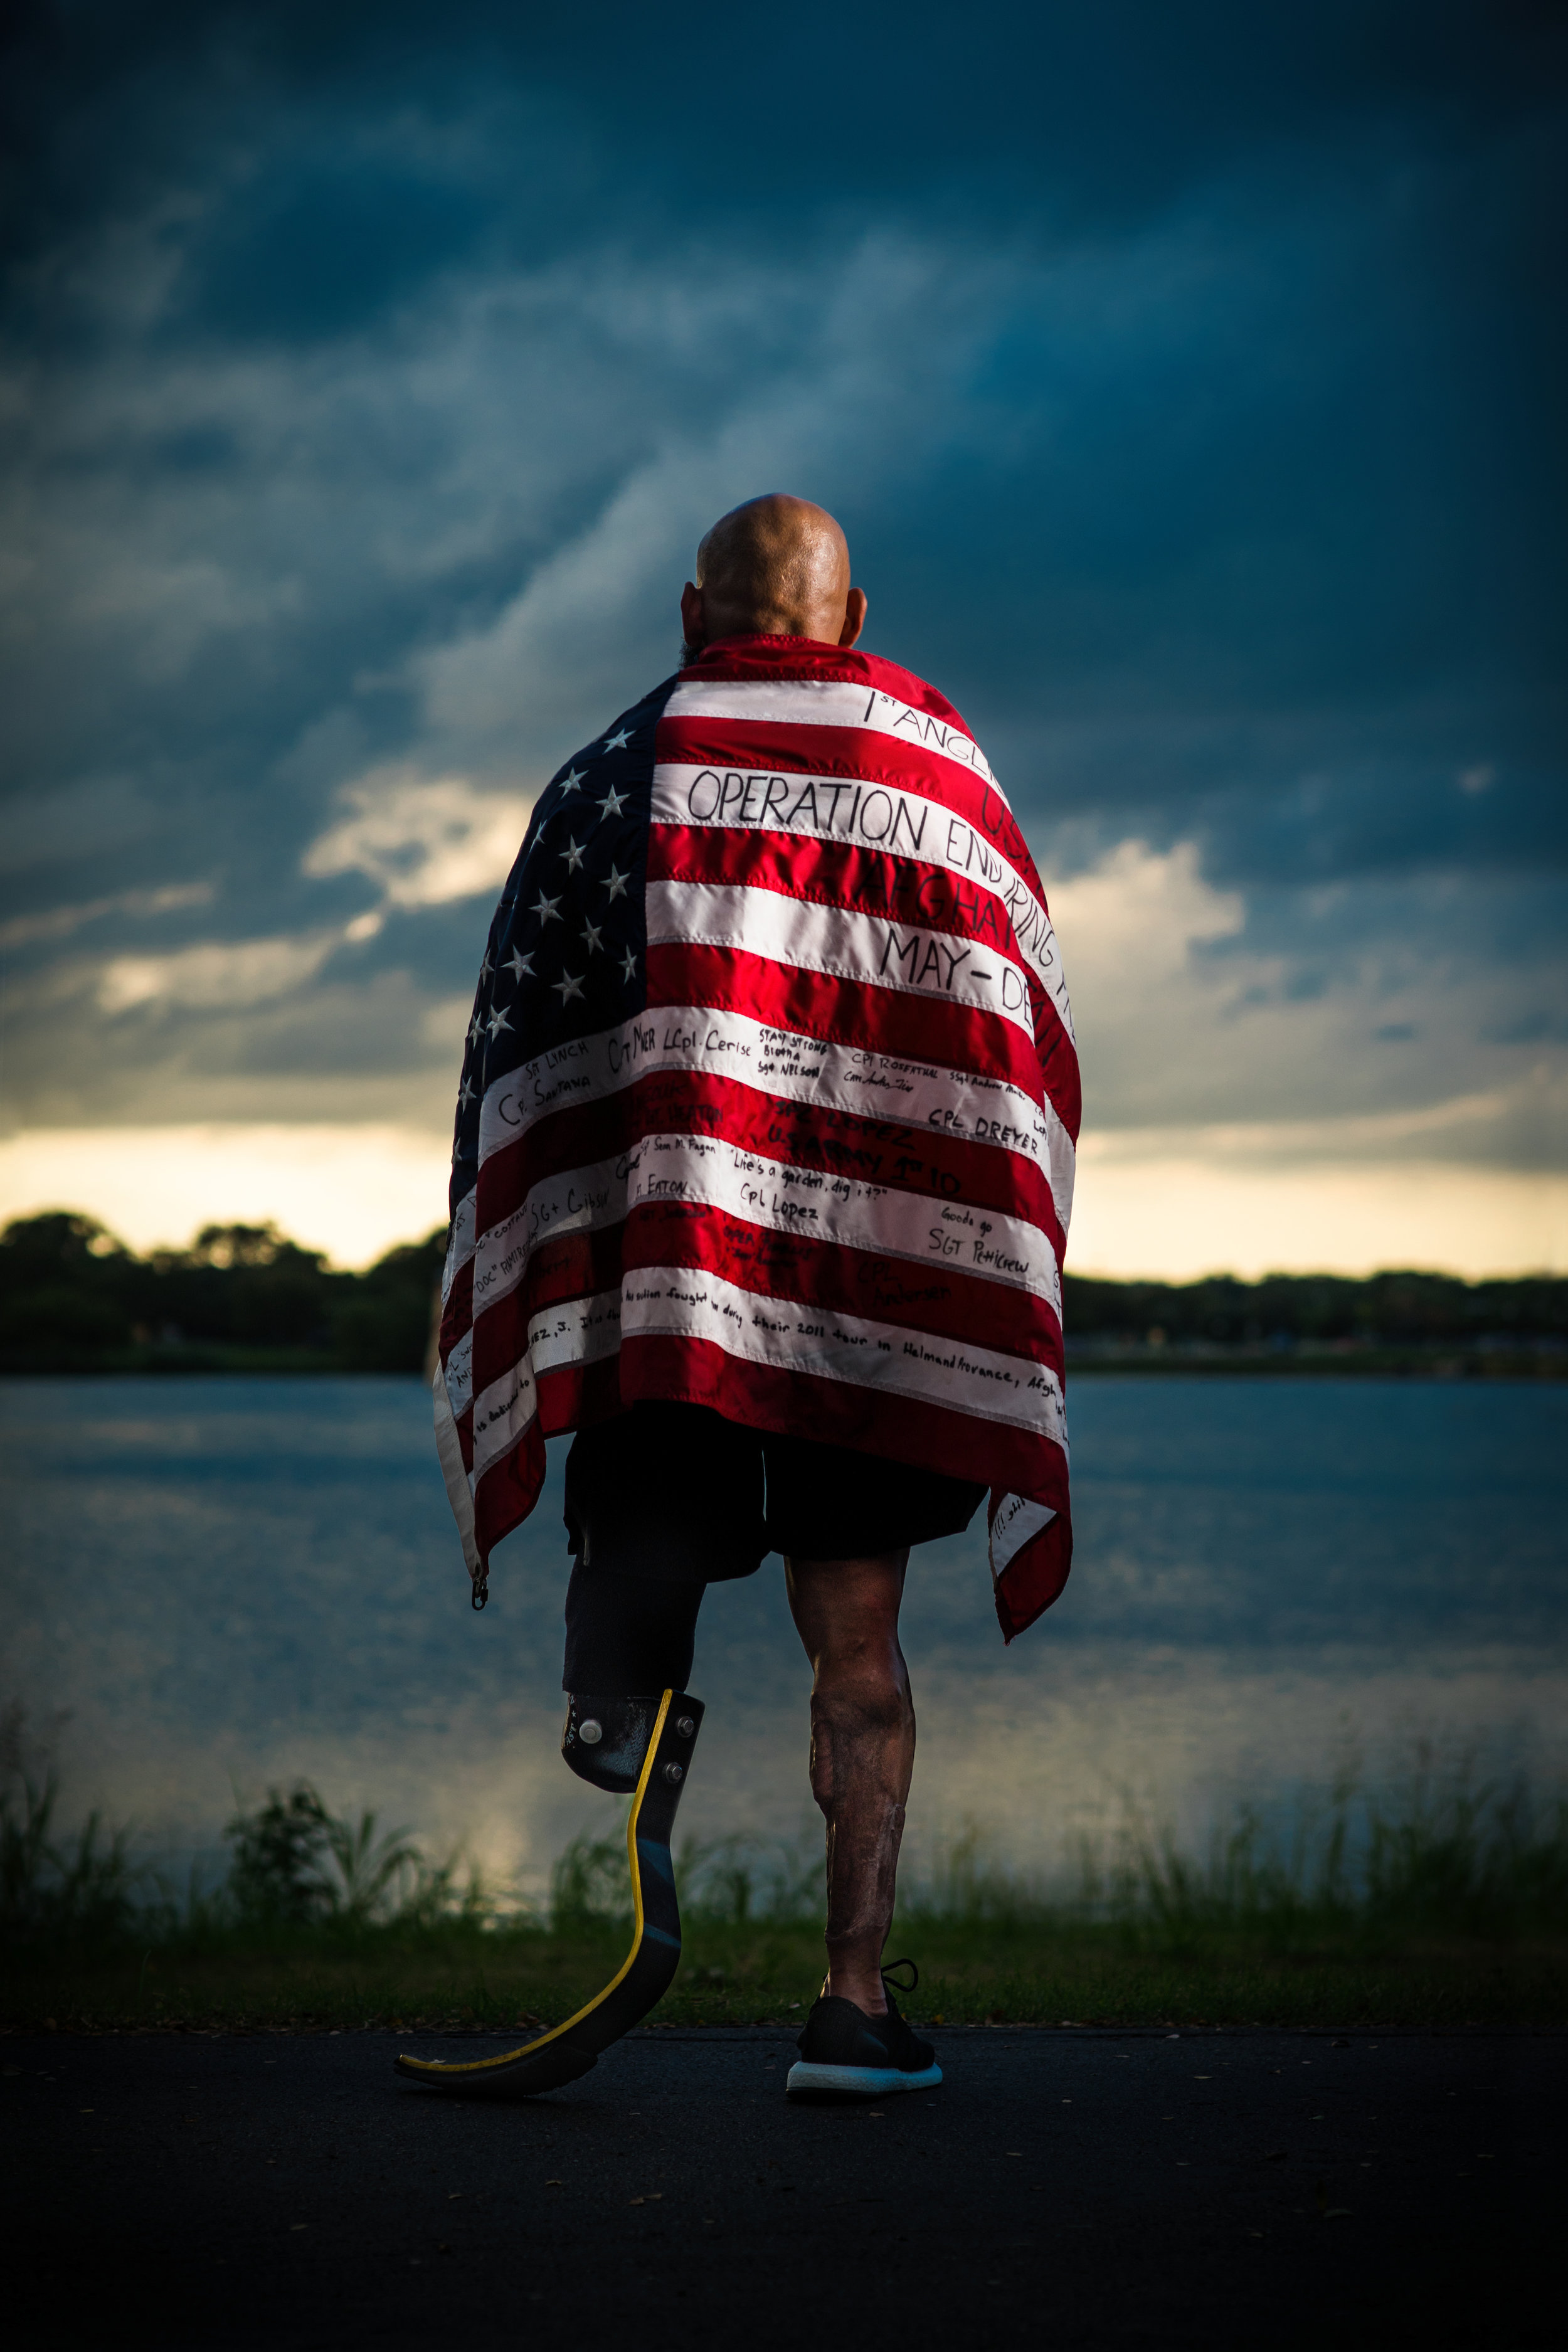 Jose Luis Sanchez,   who ran the Boston Marathon while carrying his unit's flag for all 26.2 miles after losing his leg in Iraq.  Sony A9, Leica M 90mm f2 Summicron